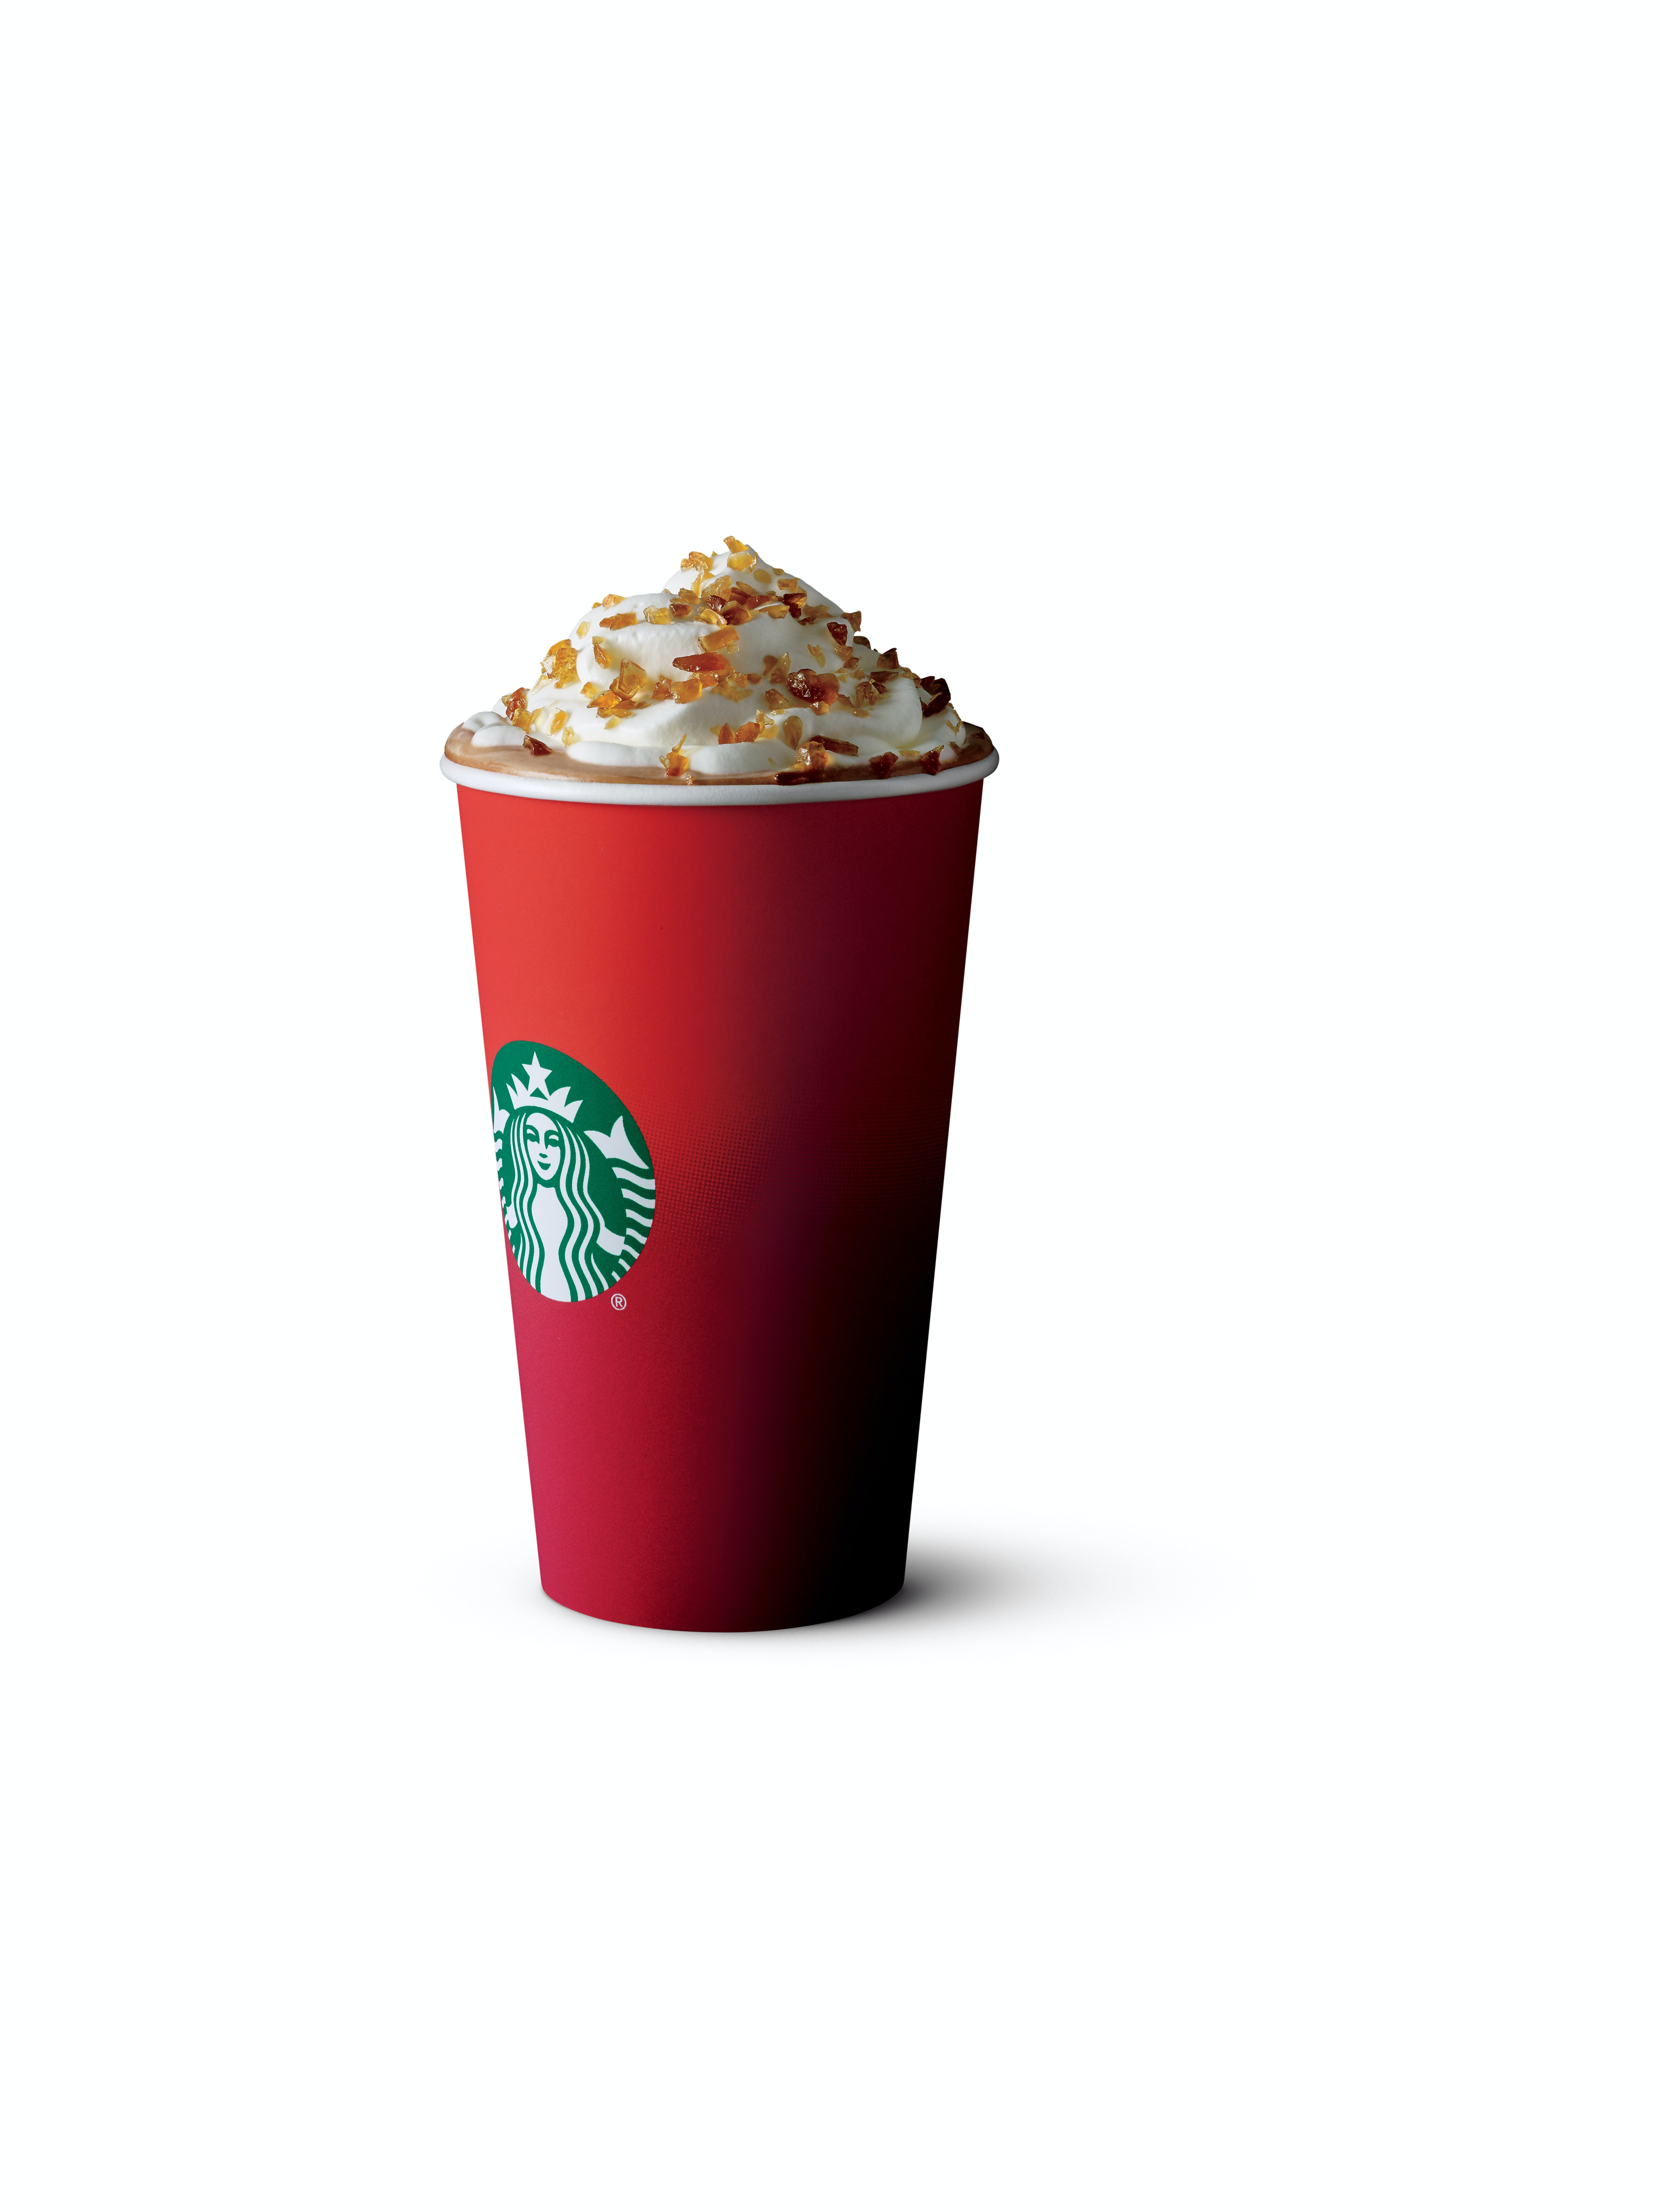 Starbucks Holiday Drink Lineup For 2018 Includes The